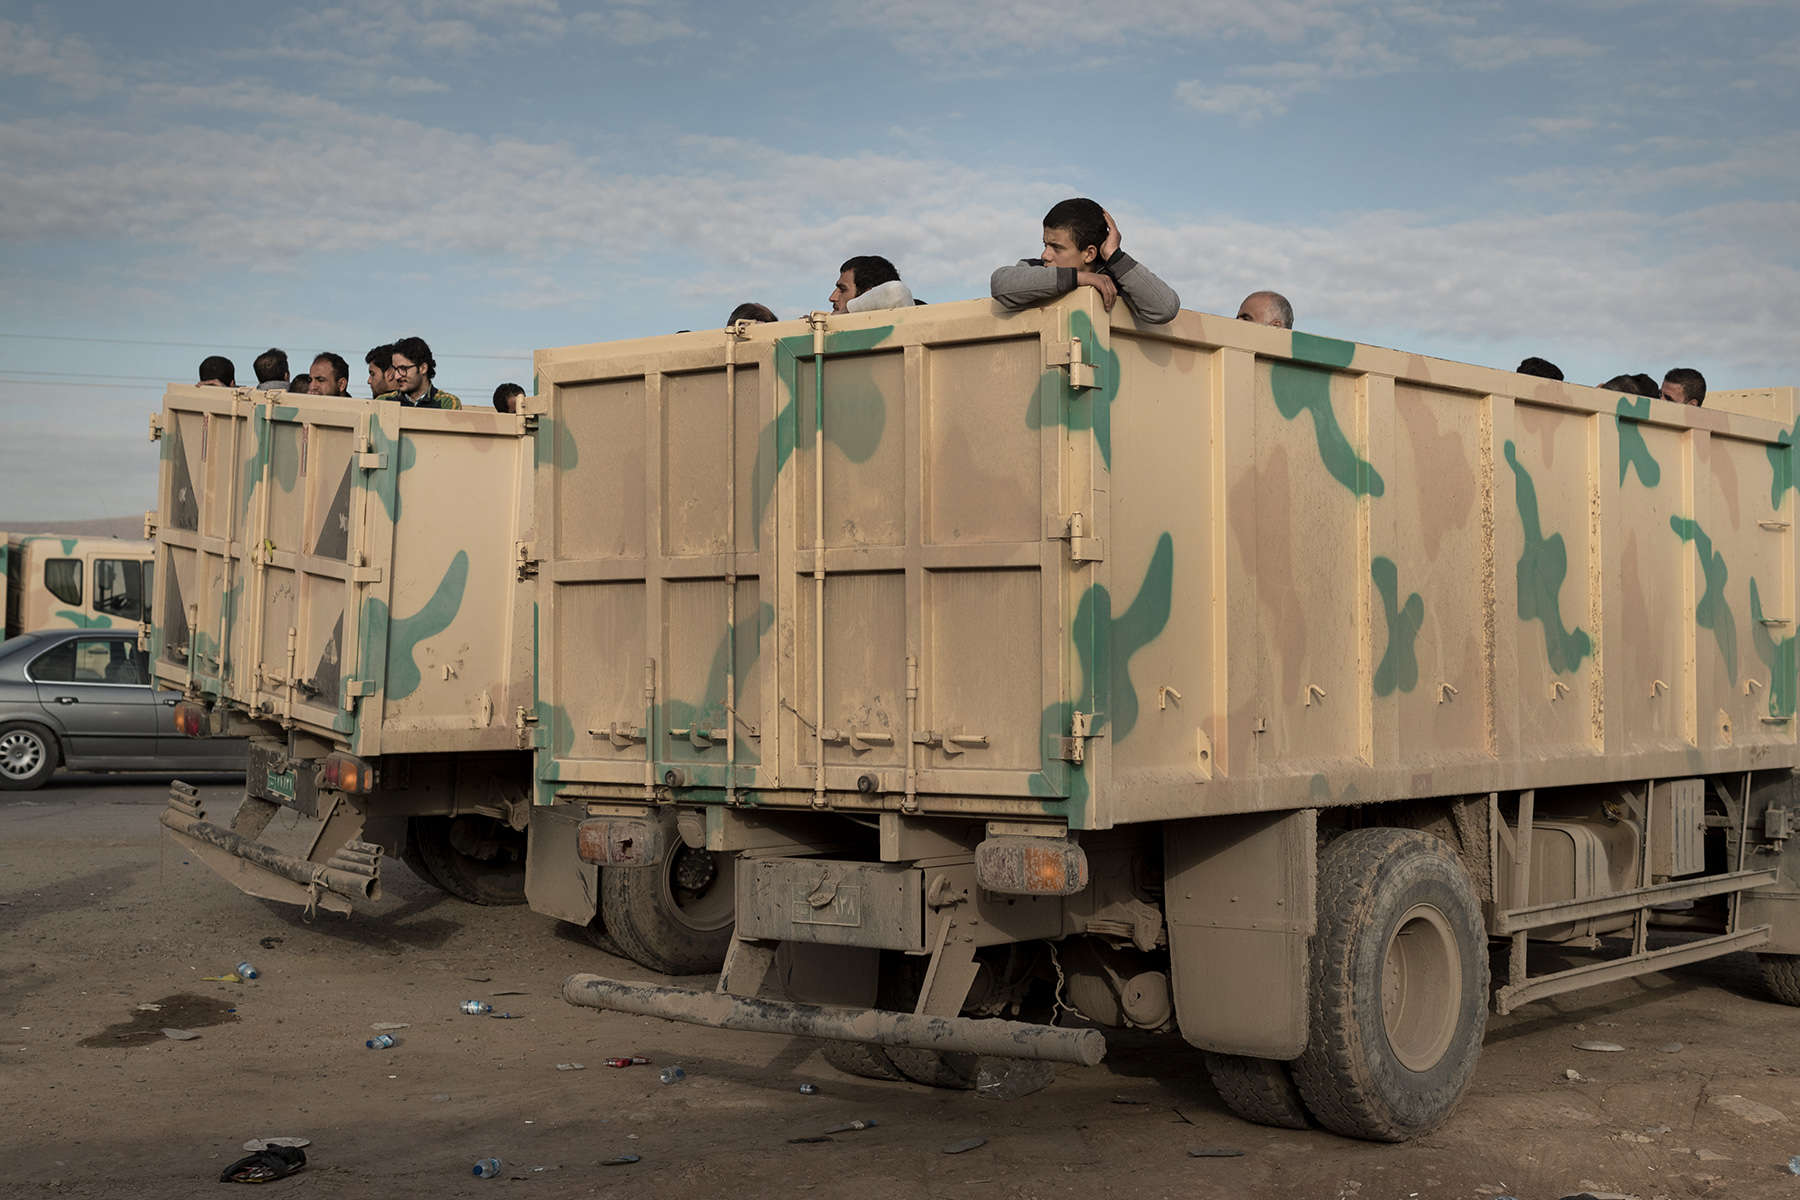 Iraqis displaced from Mosul wait in military trucks to be transferred to various camps. Bartella, Mosul, Iraq on Jan. 7, 2017.